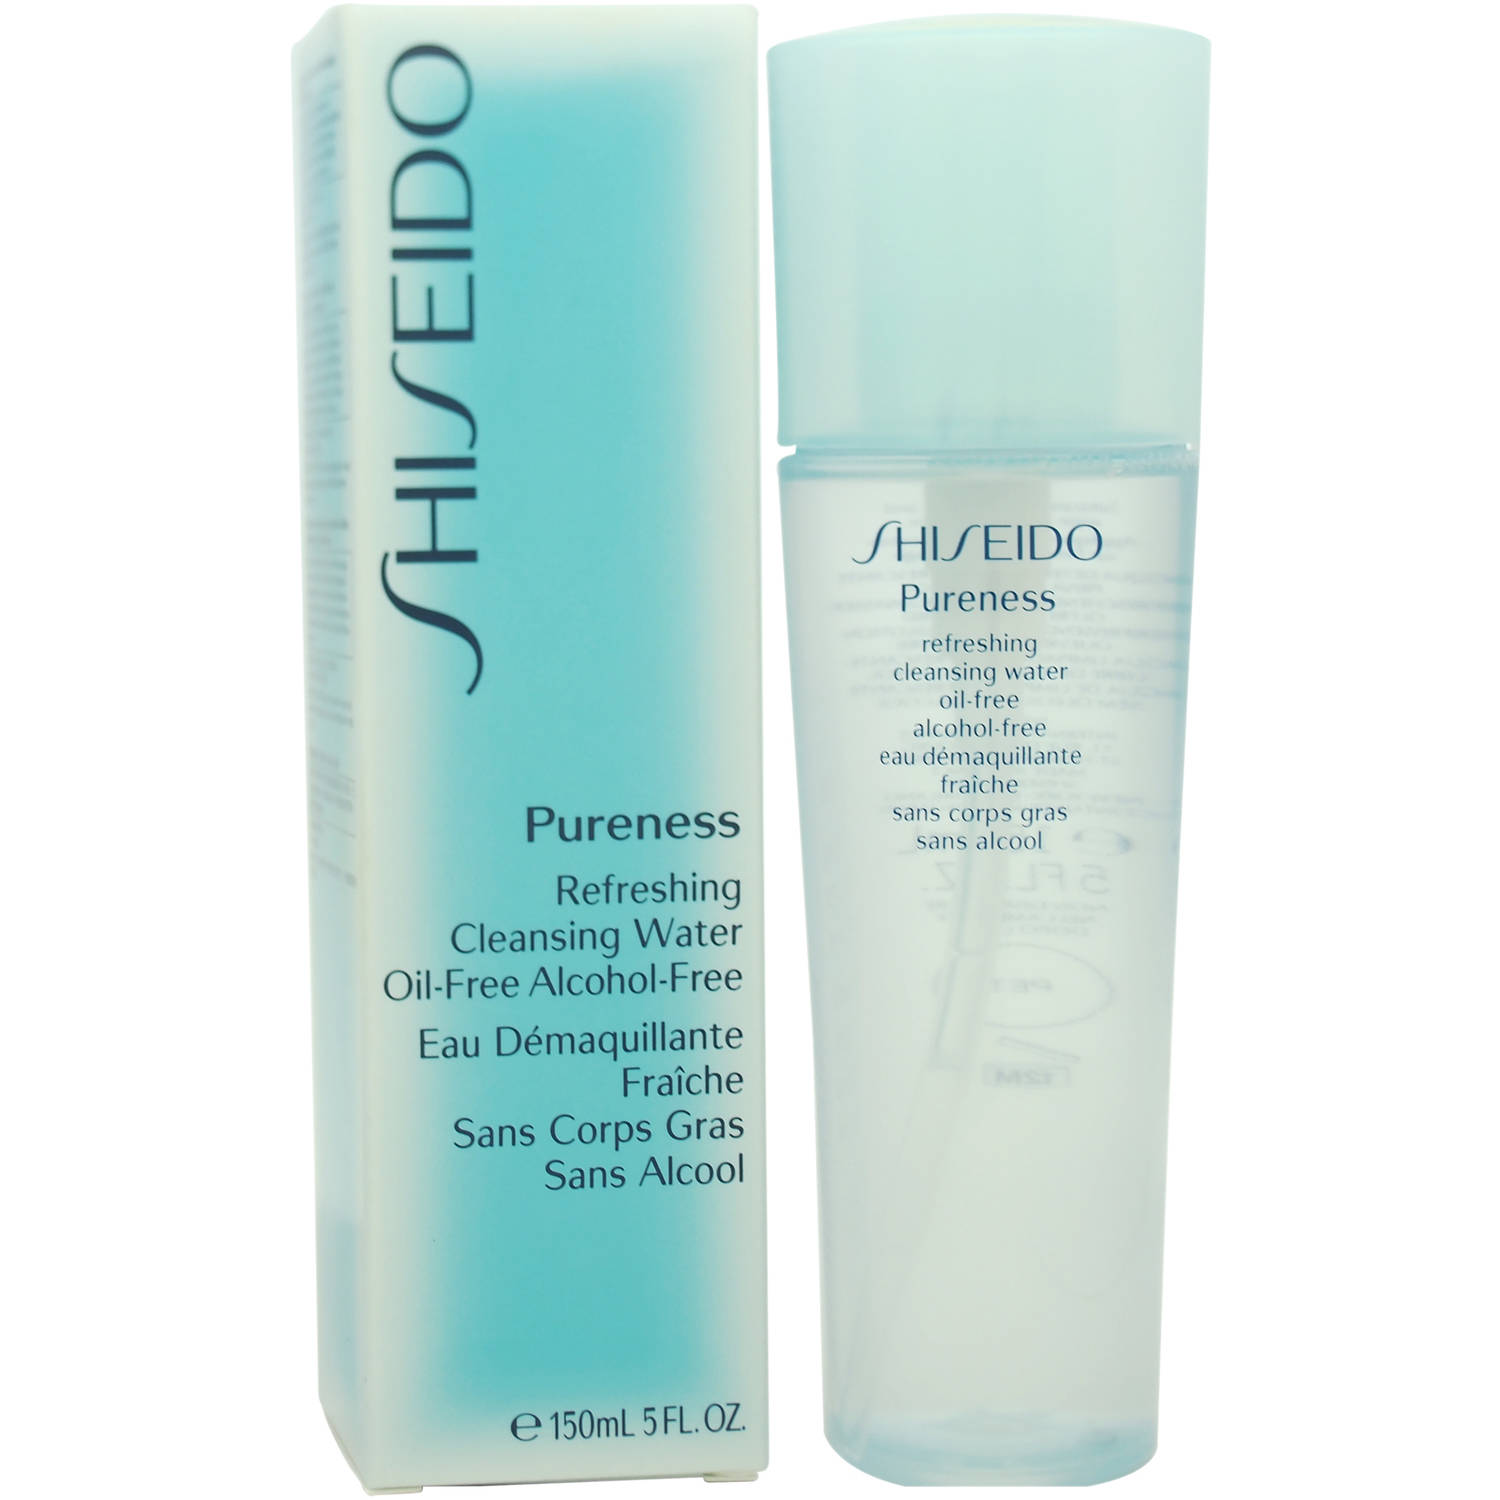 Pureness Refreshing Cleansing Water Oil-Free by Shiseido for Unisex Cleansing Water, 5 oz Coppertone Oil-Free SPF#30 3 oz. Face (Case of 6)